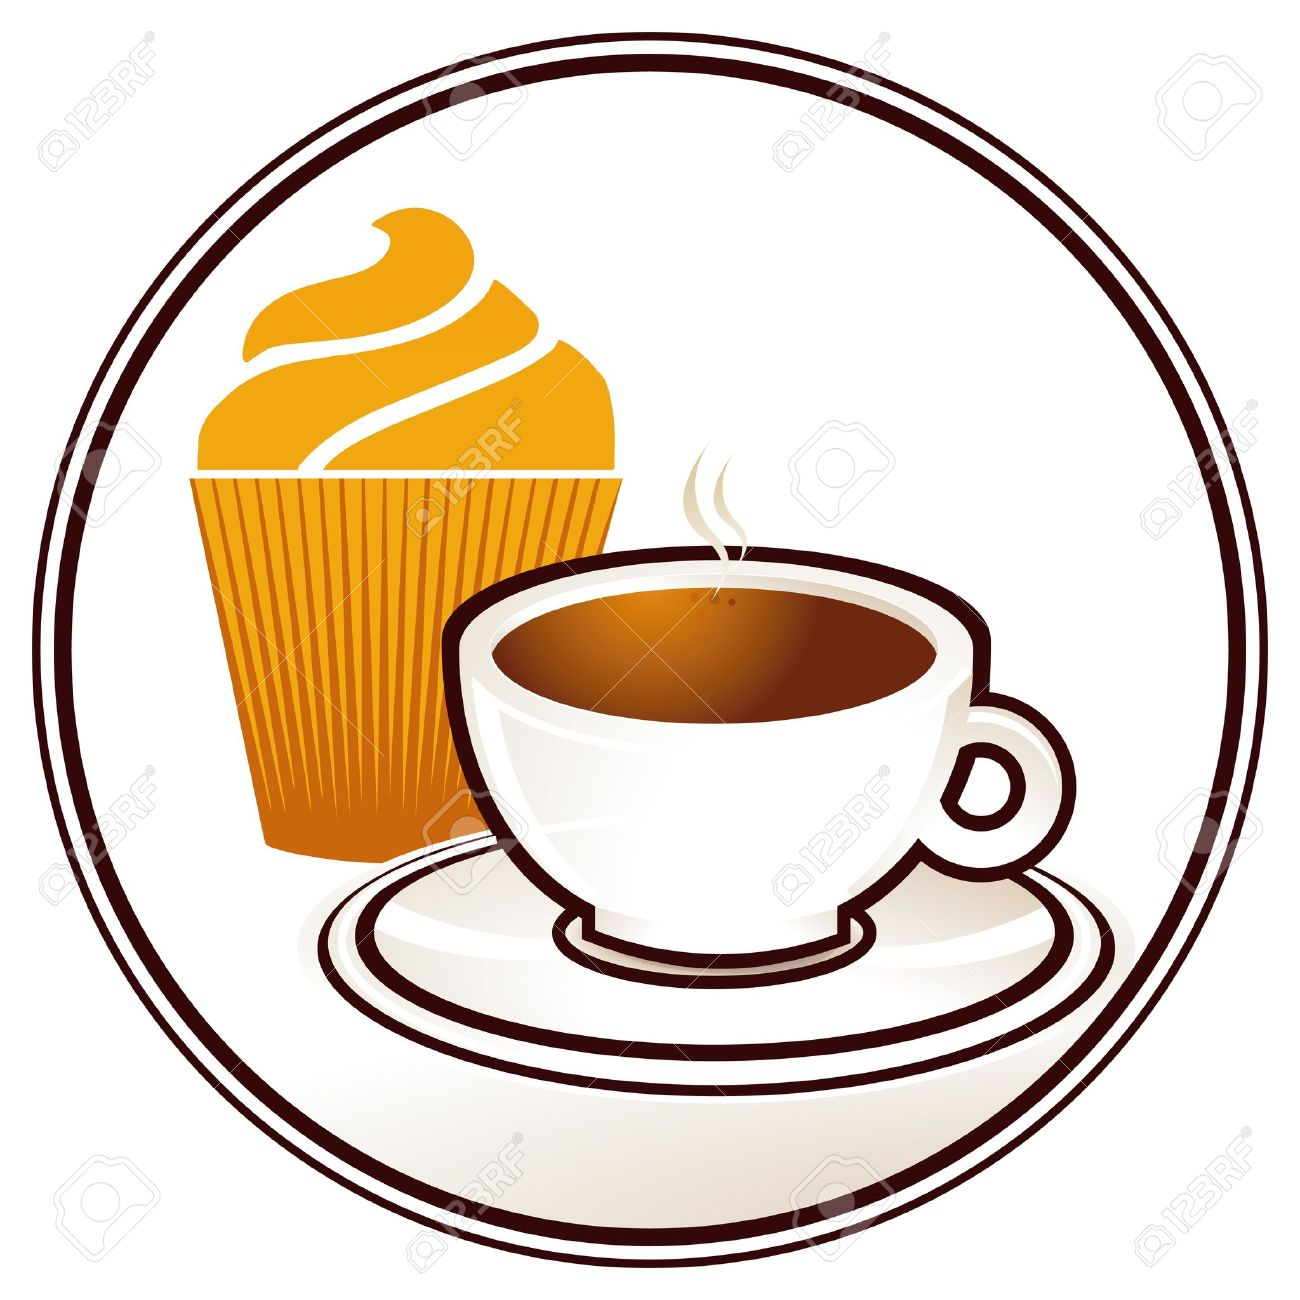 Image result for coffee and cake clipart